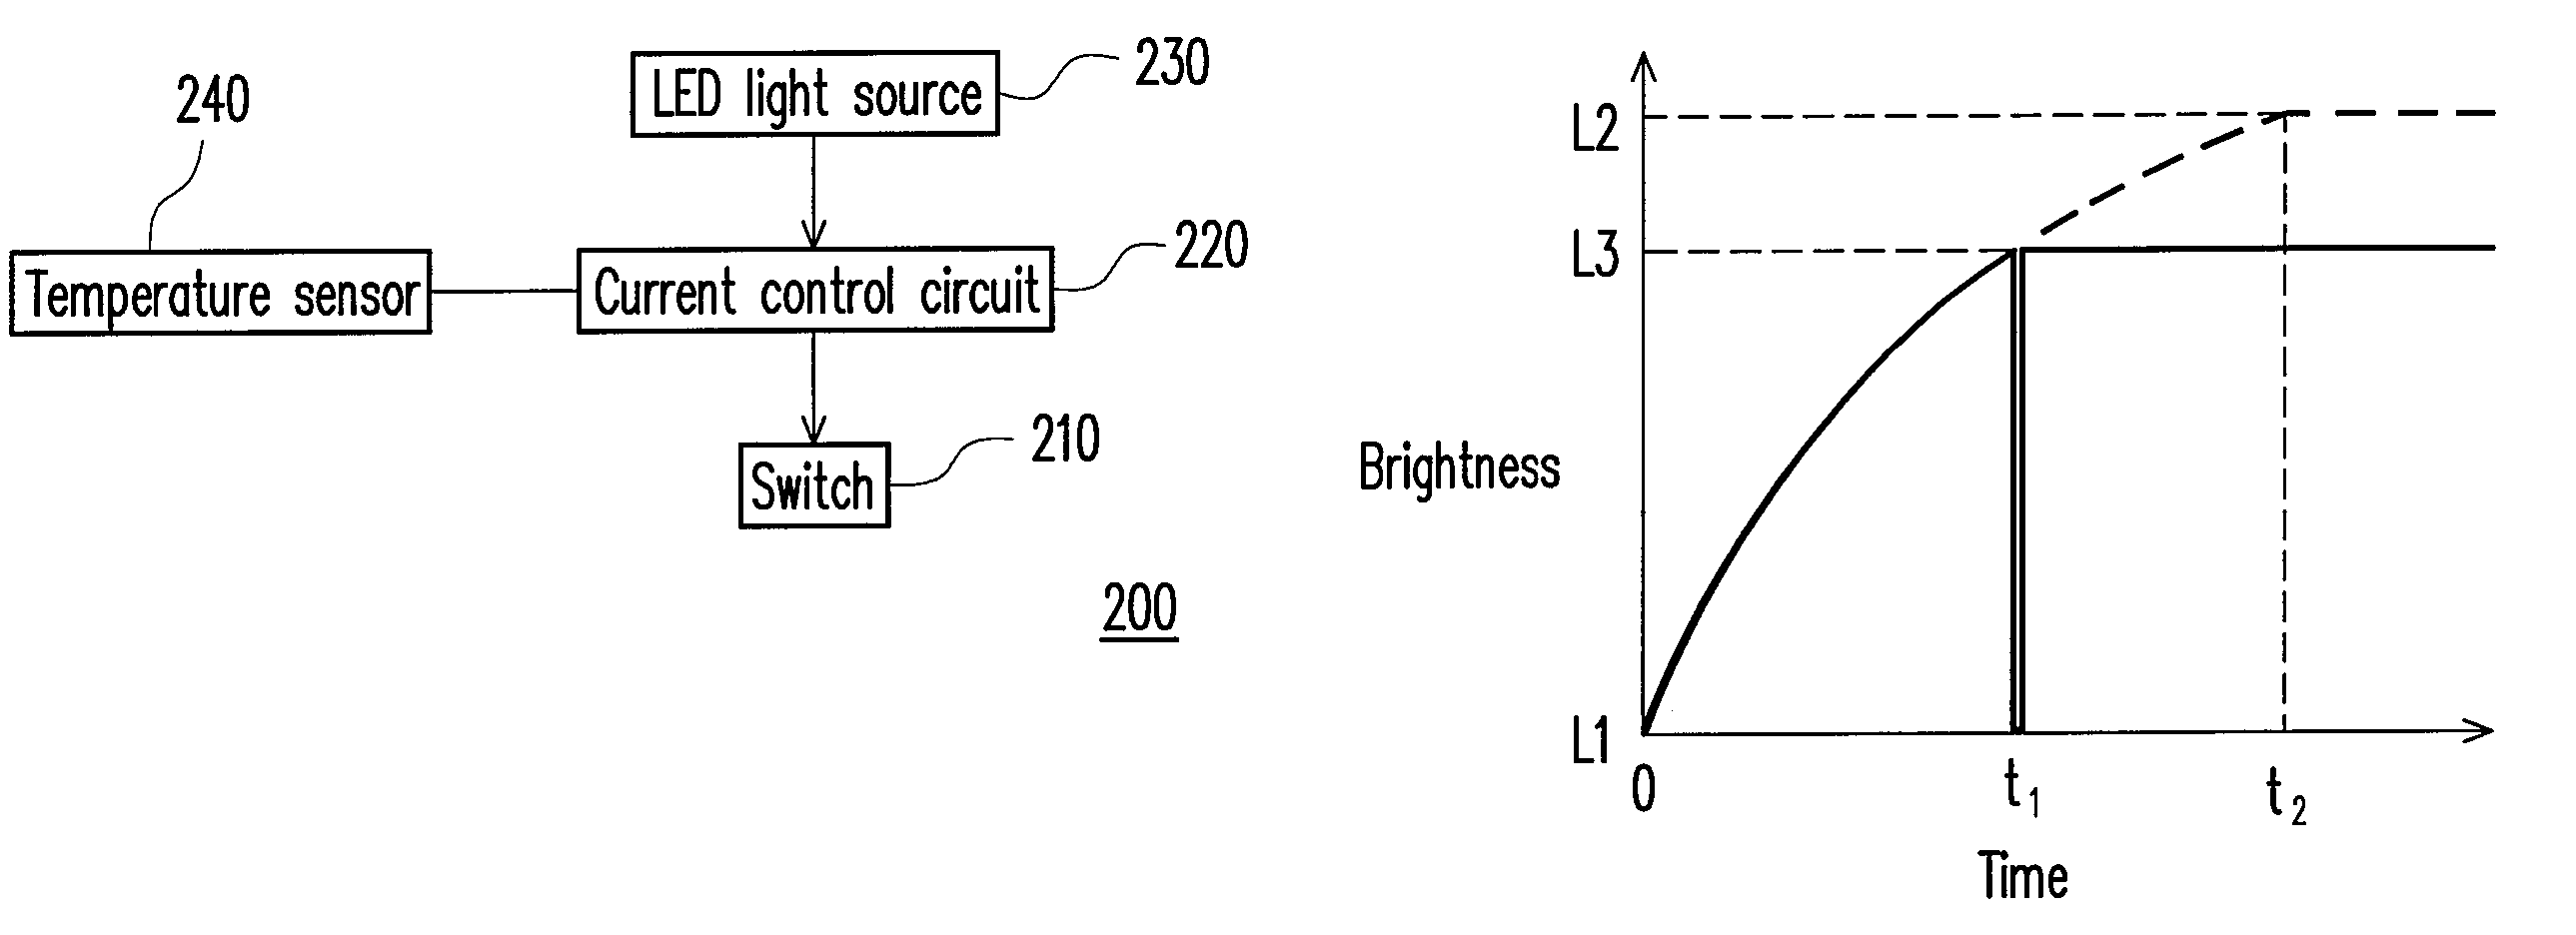 Patent Us7888877 Light Emitting Diode Lamp And Illumination System Led Circuit Drawing